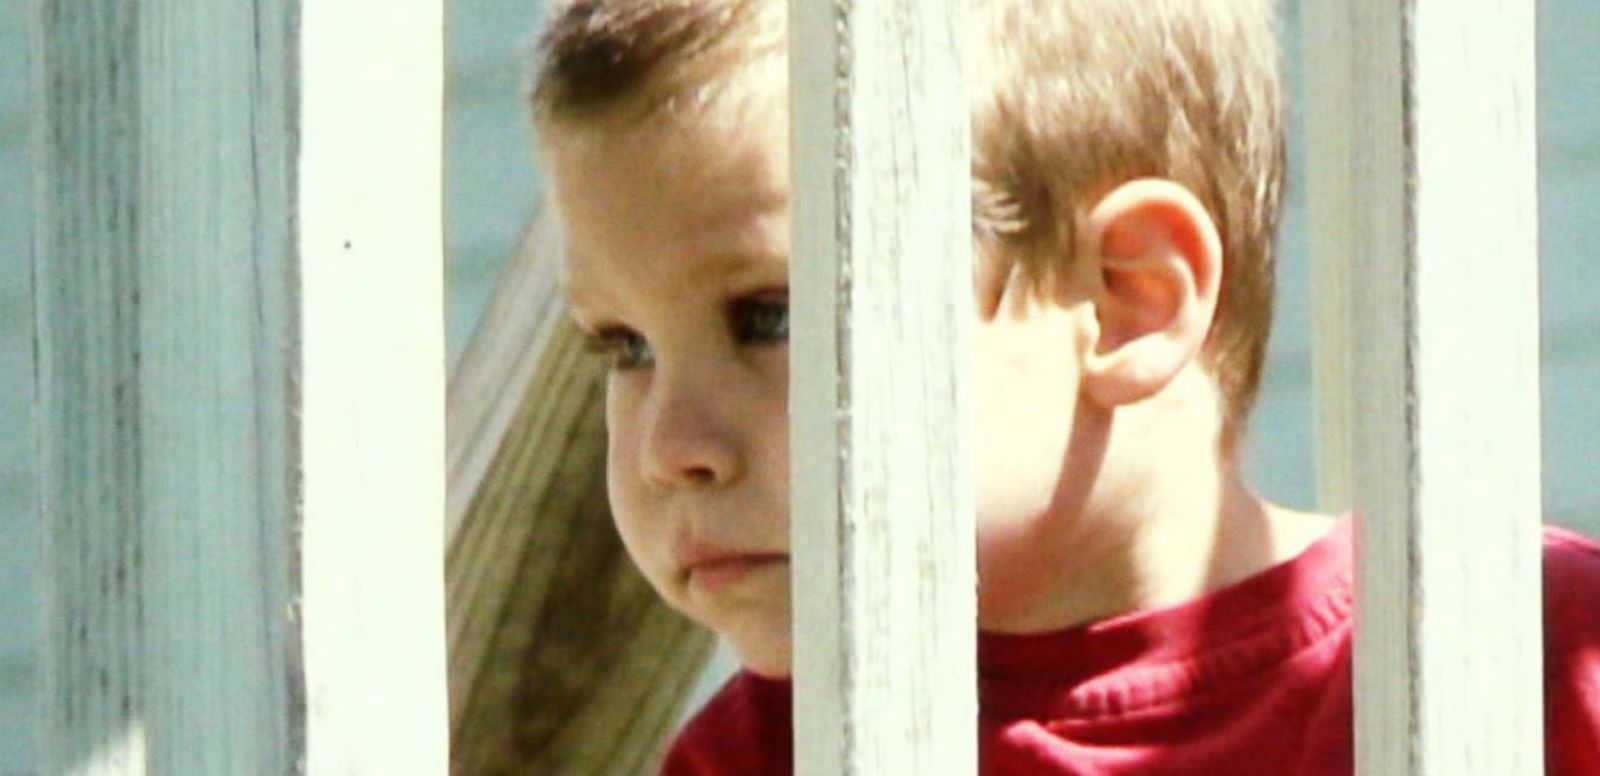 Foster Son's Parents Suspected of His Salt Poisoning Death